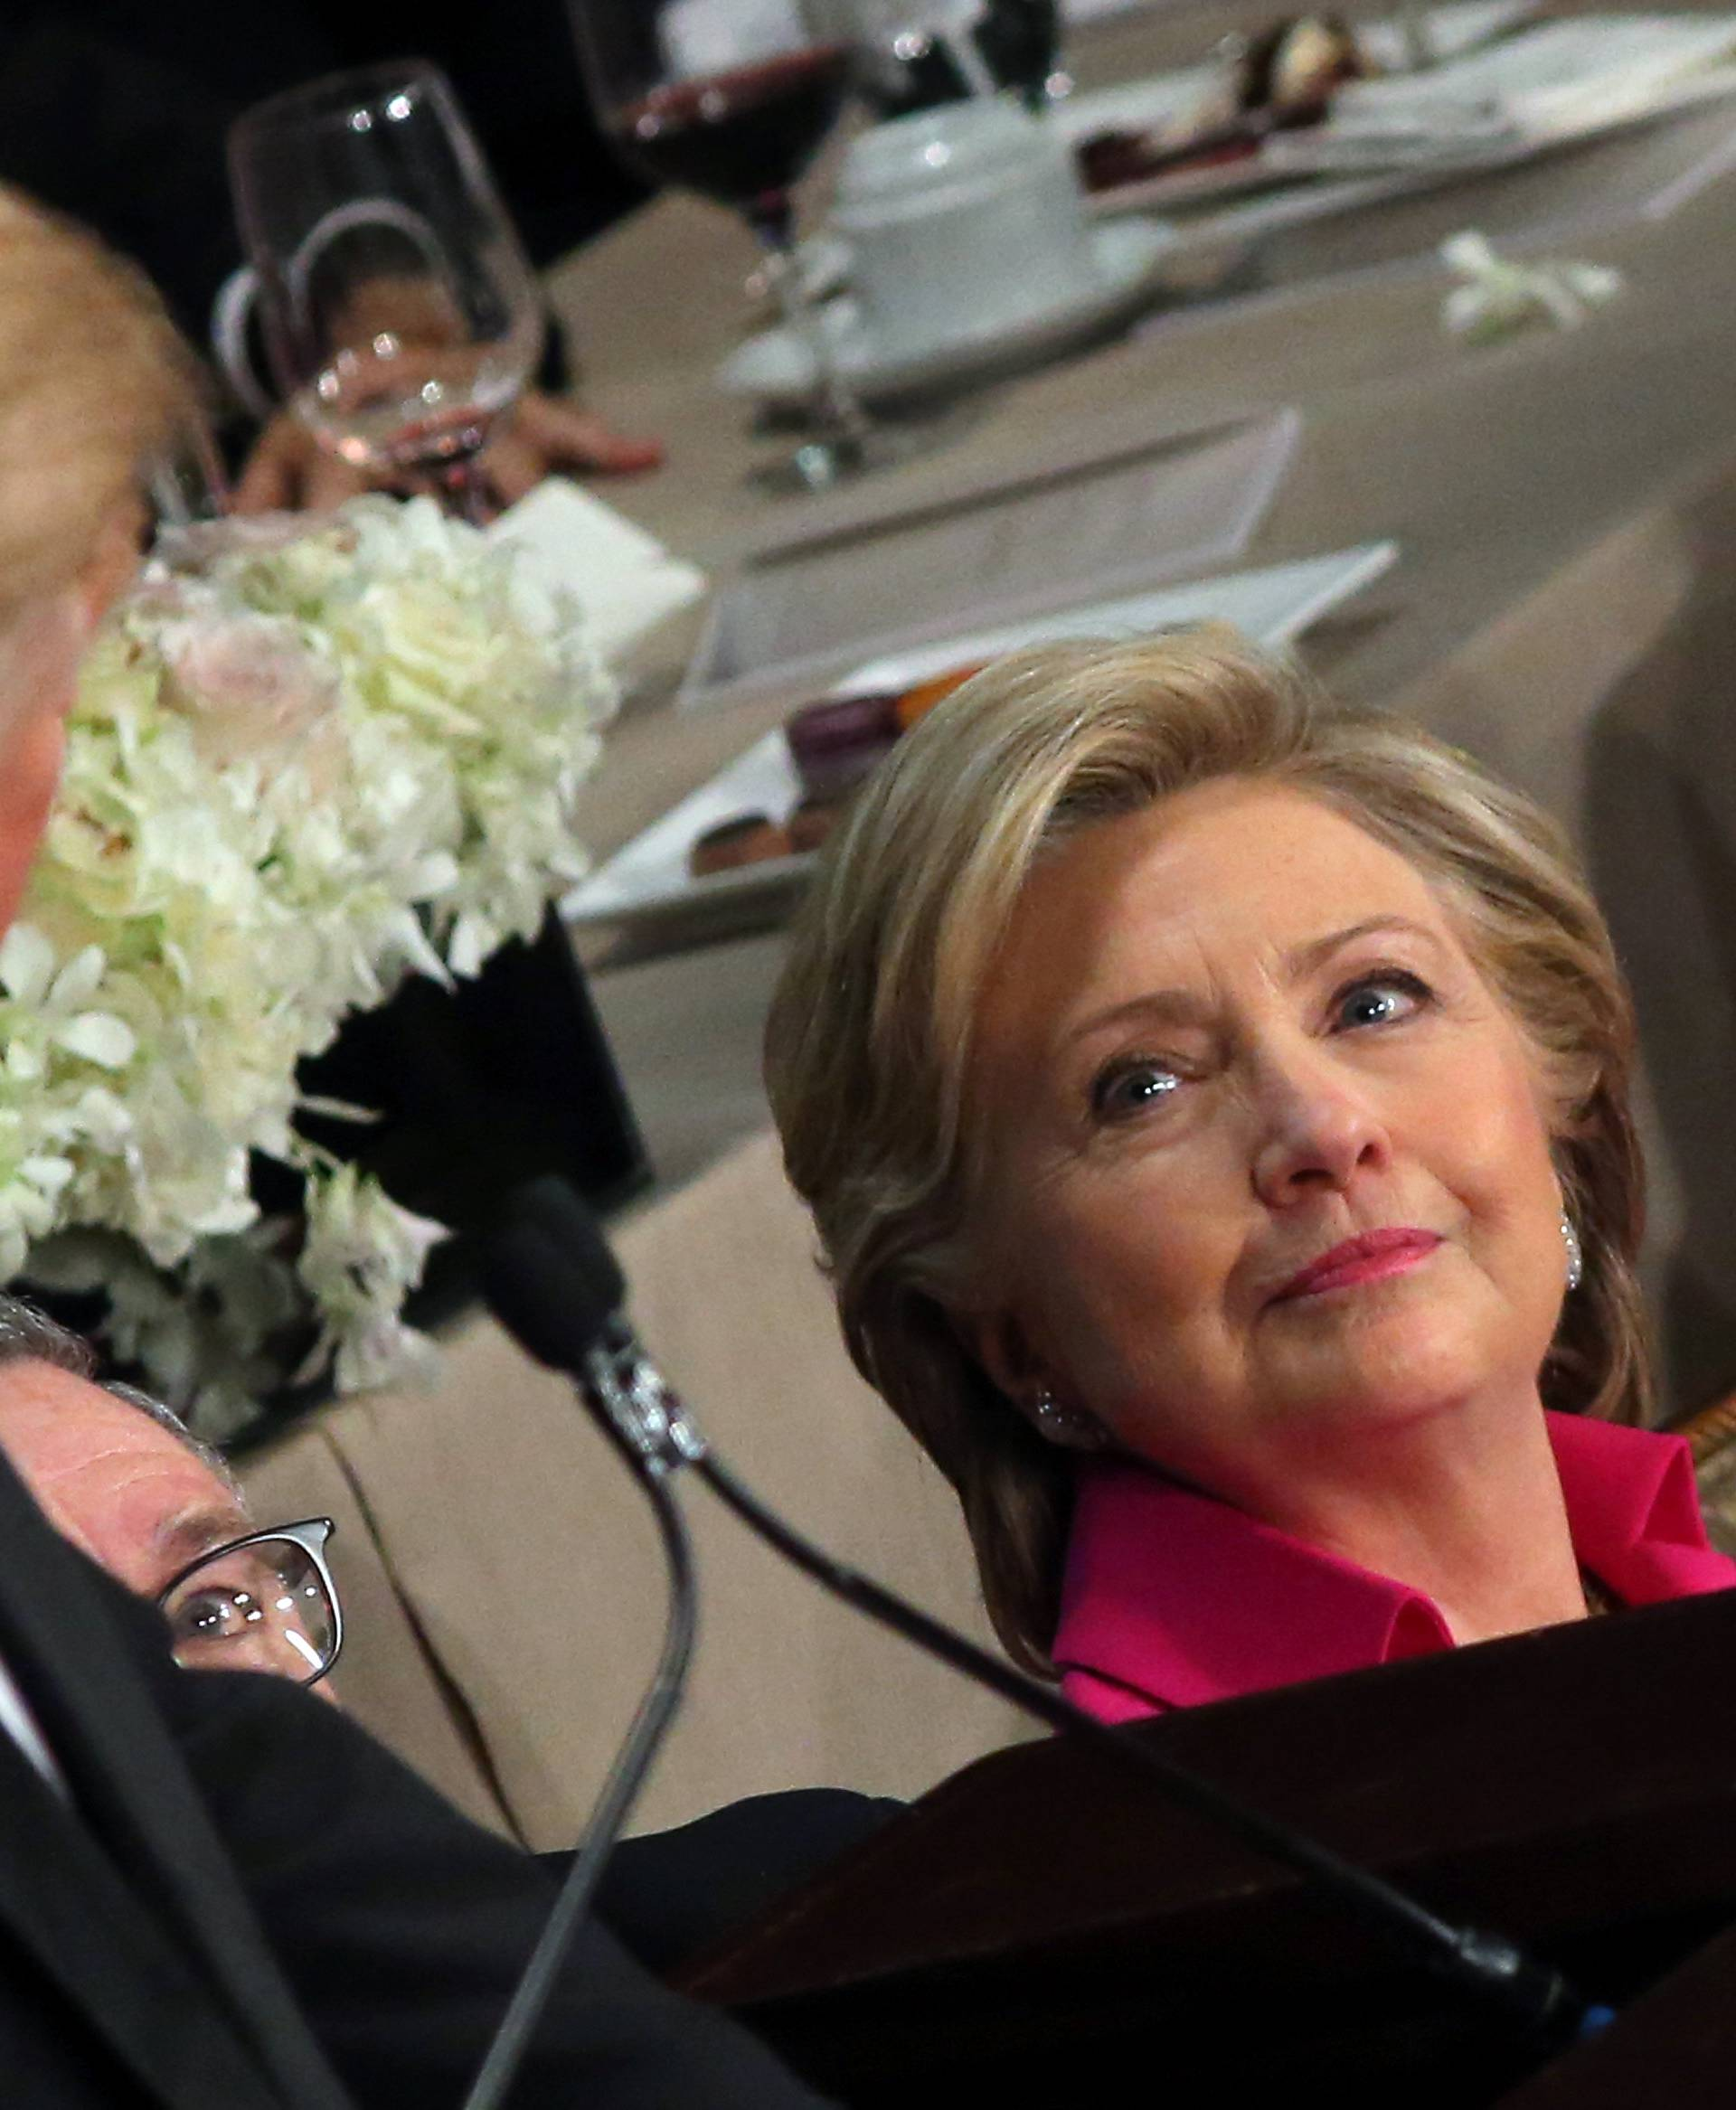 Democratic U.S. presidential nominee Hillary Clinton looks at Republican U.S. presidential nominee Donald Trump as he speaks during the Alfred E. Smith Memorial Foundation dinner in New York, U.S.